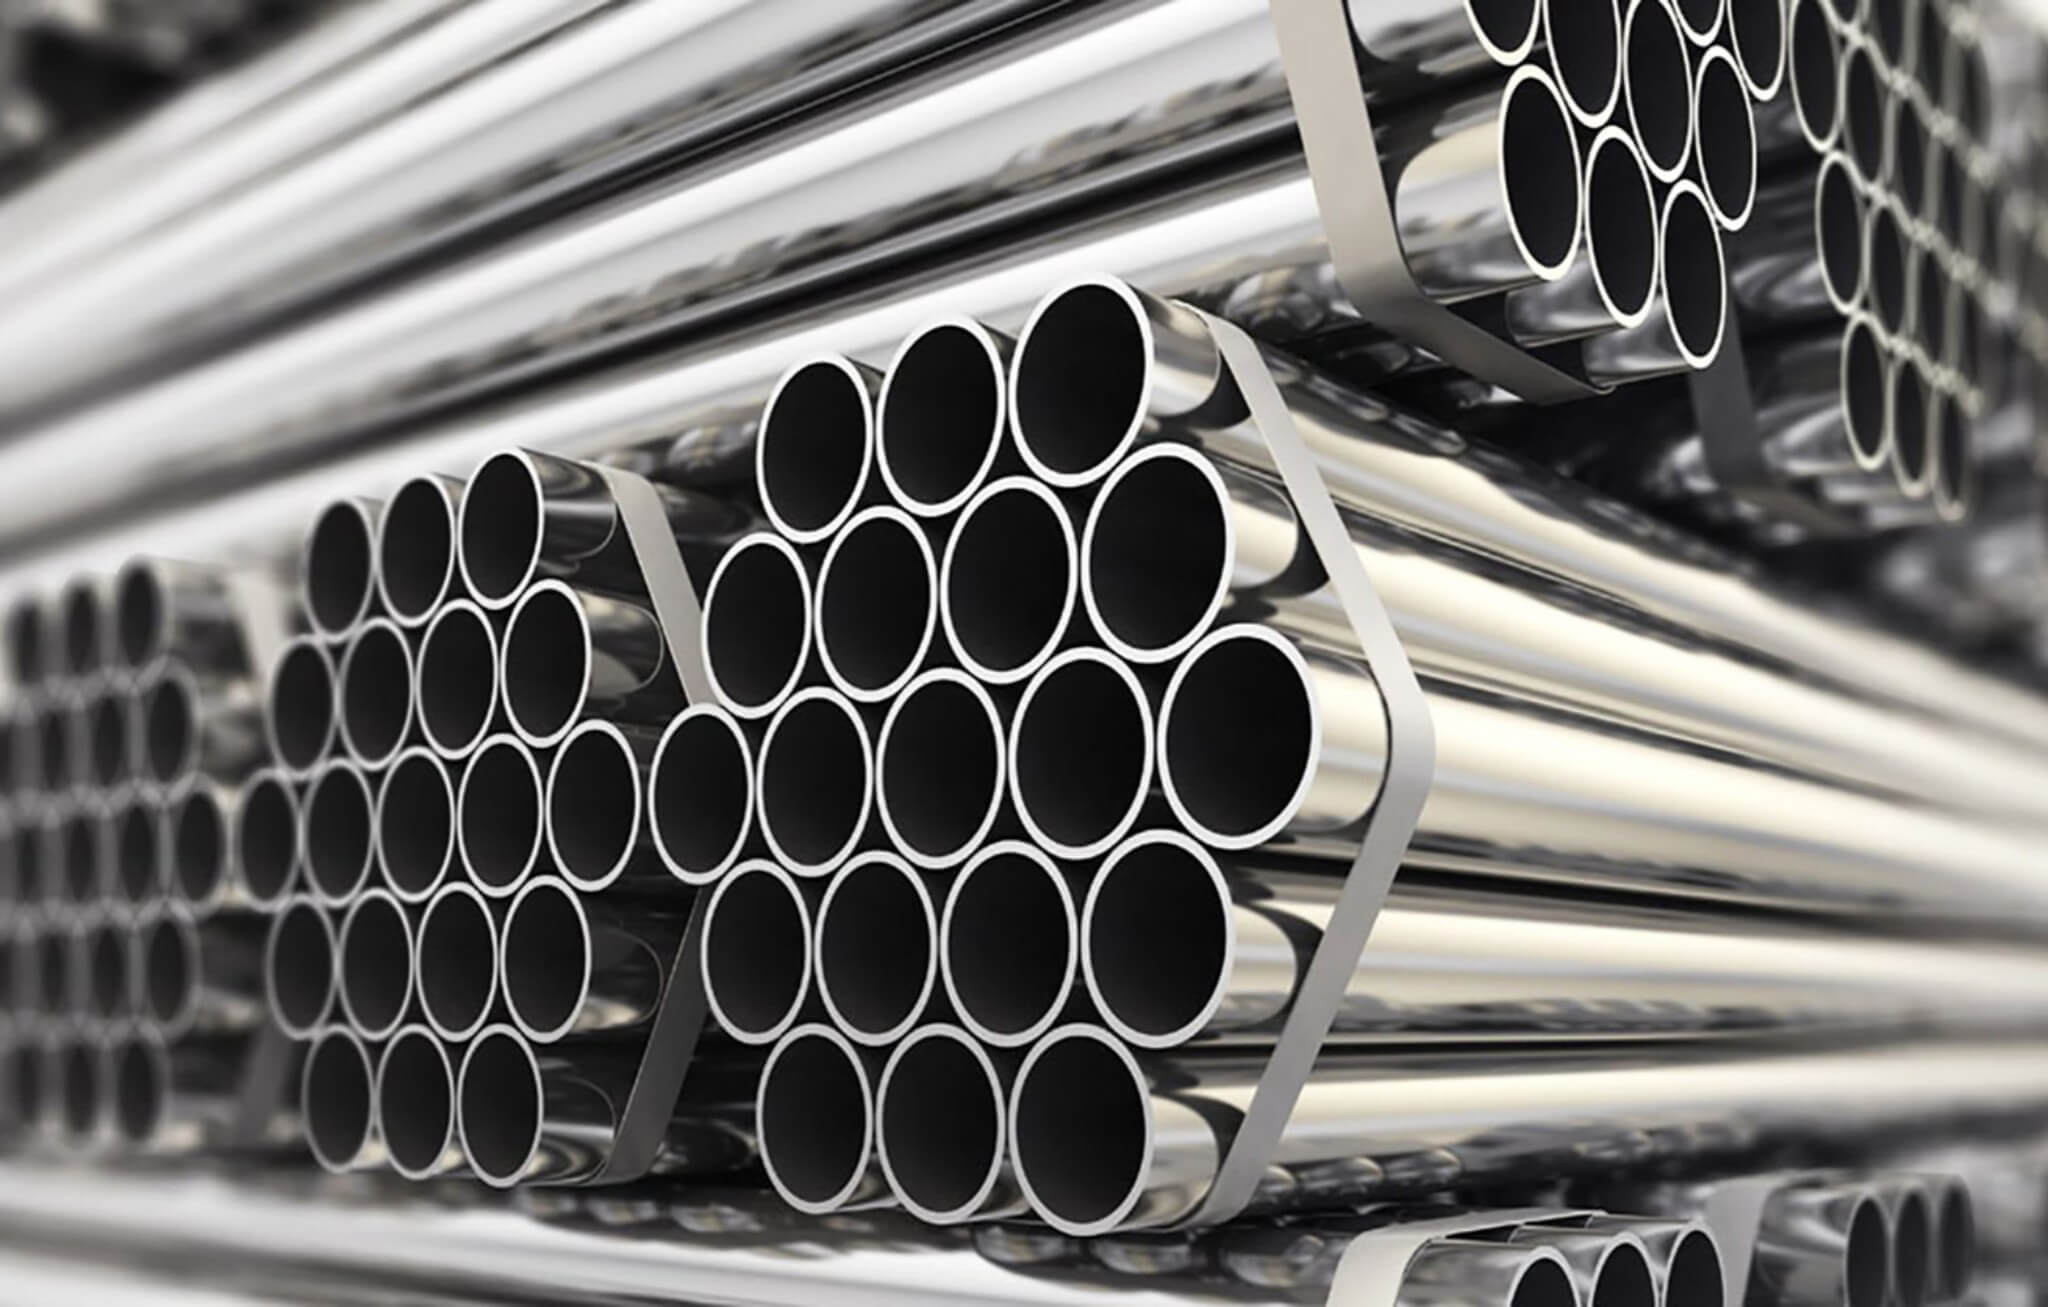 304 stainless steel tubes stacked